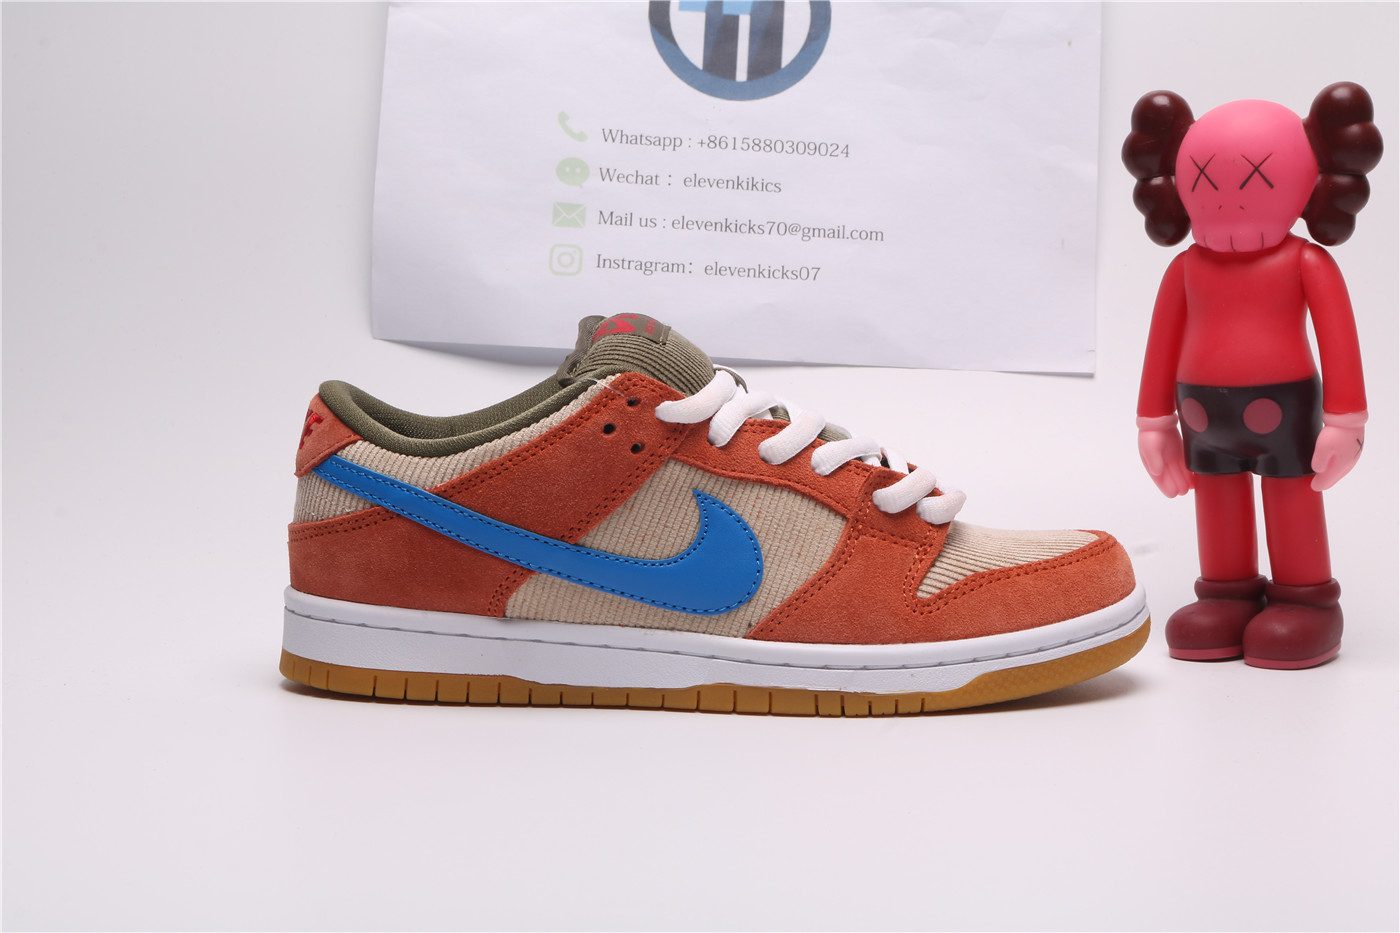 Nike SB Dunk Low Corduroy Dusty Peach